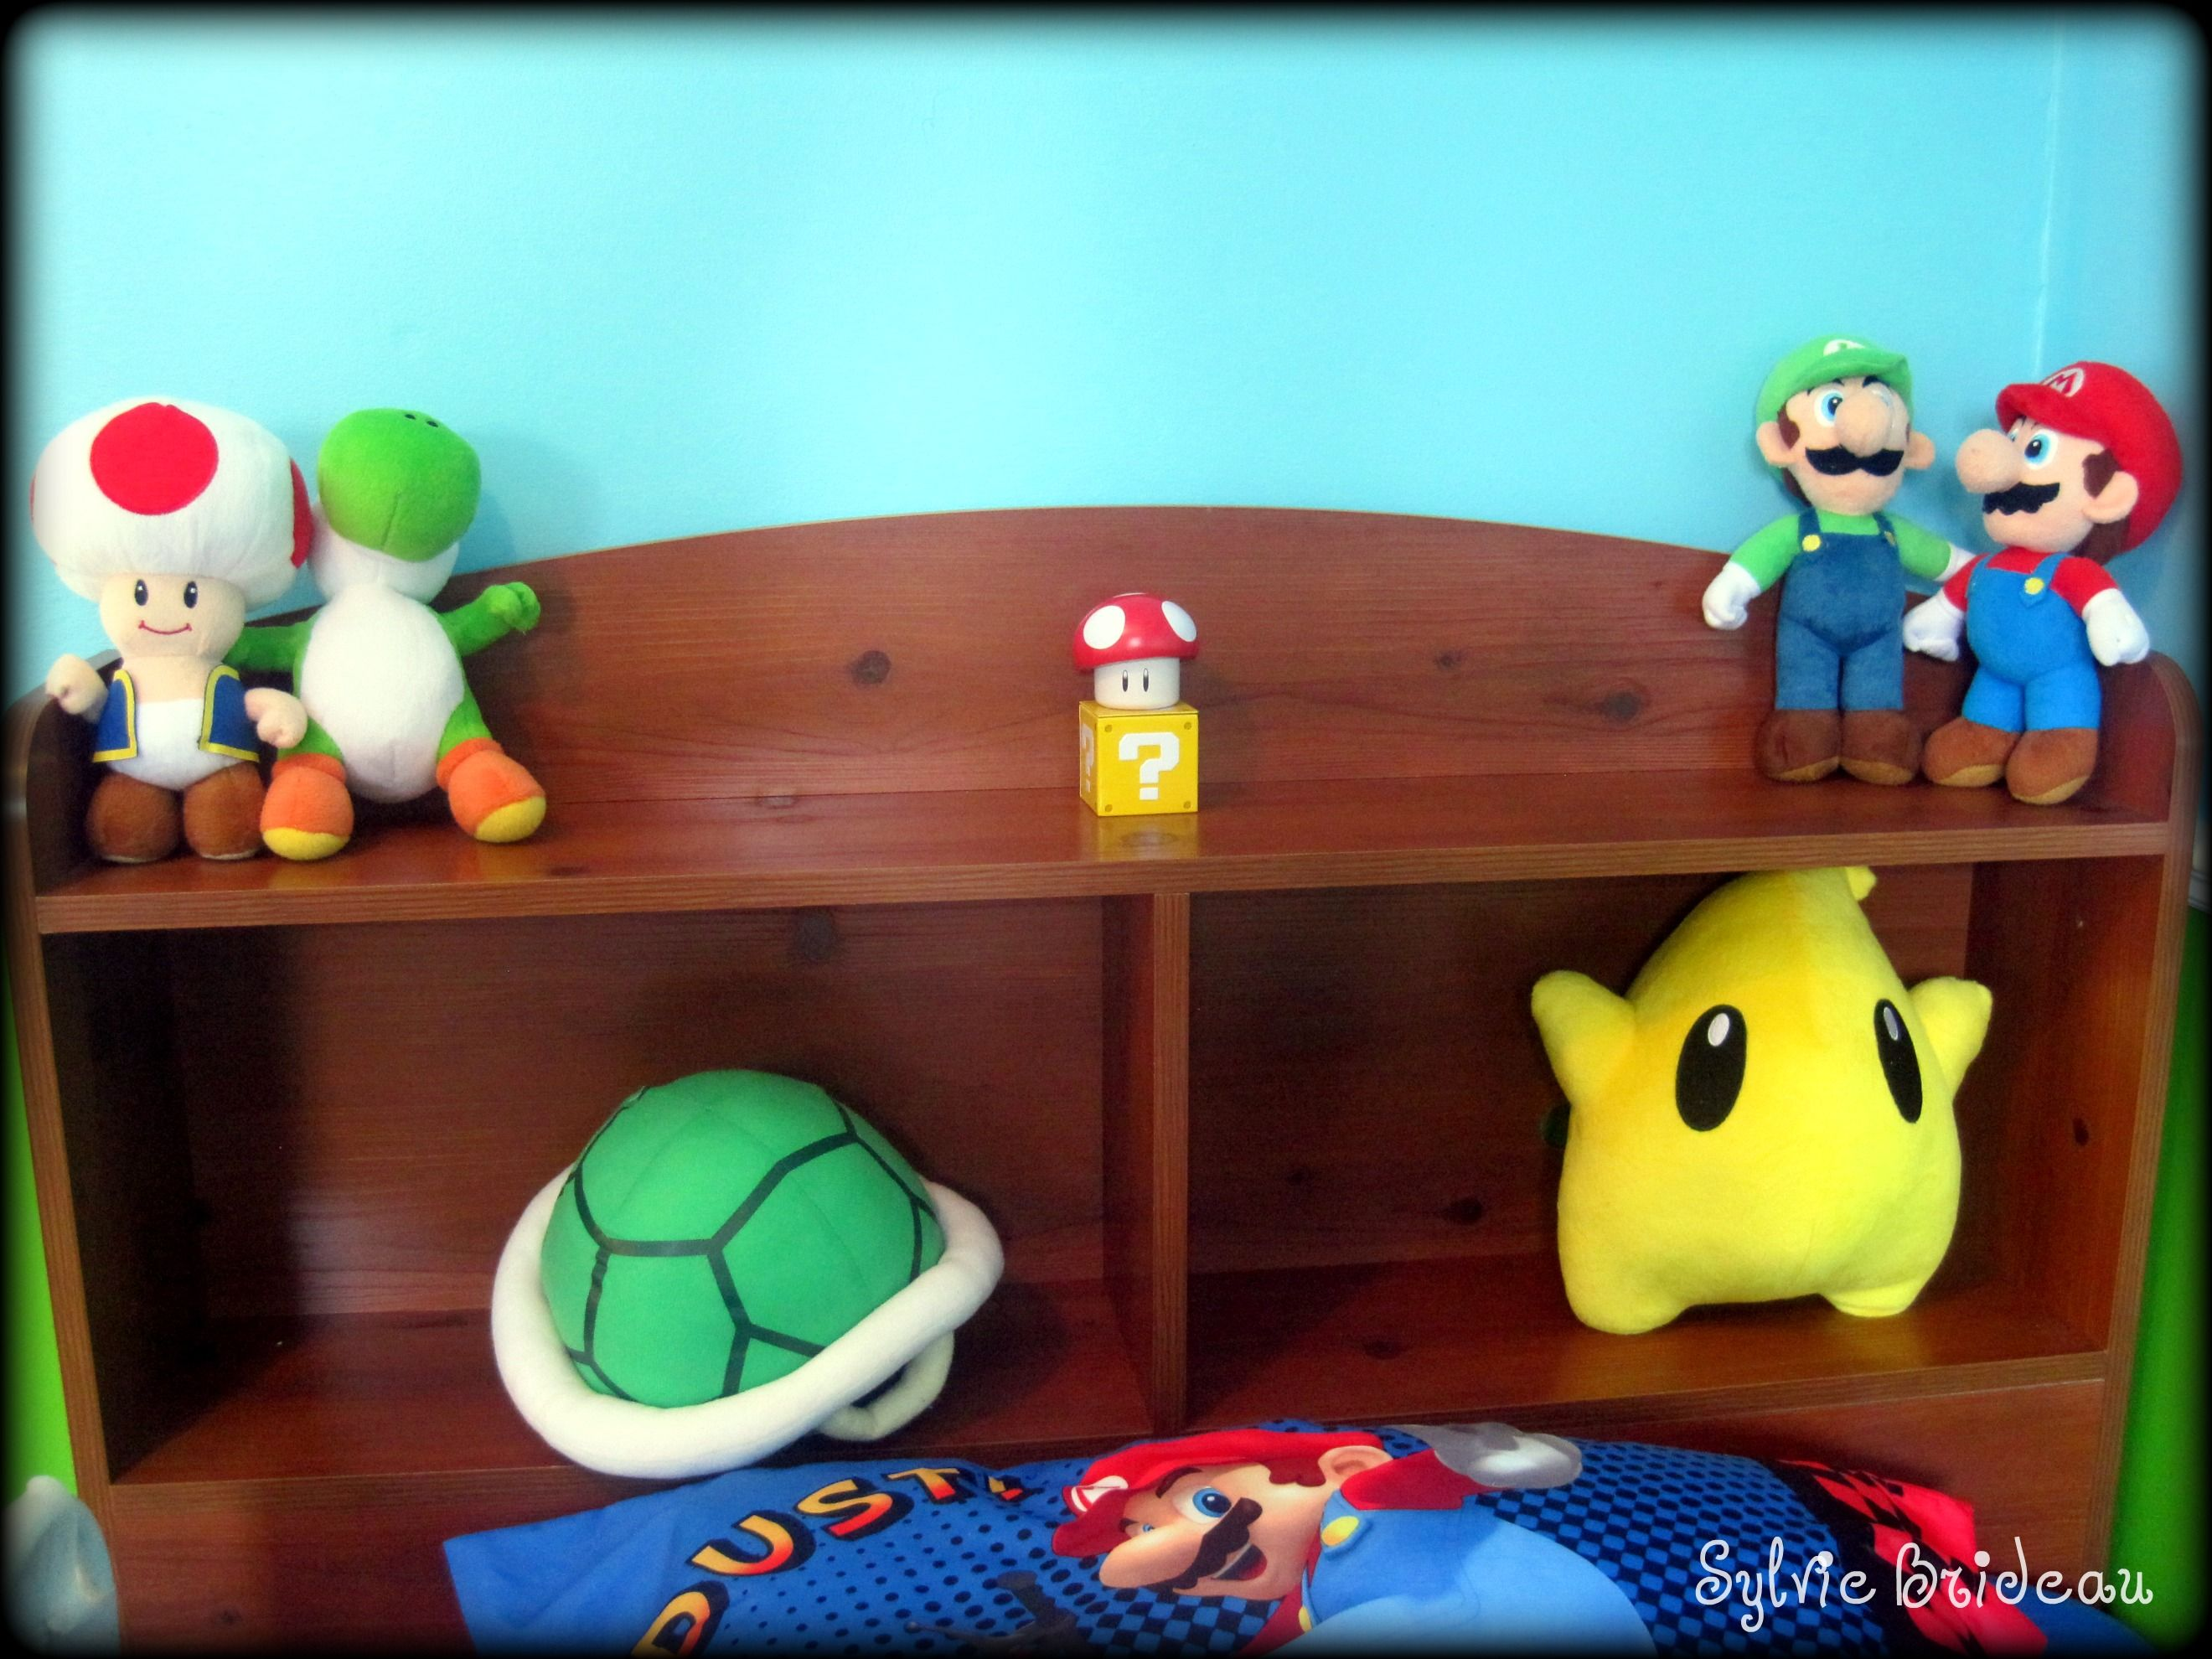 Mario Bedroom Wallpaper 17 Best Images About Super Mario Room On Pinterest Super Mario